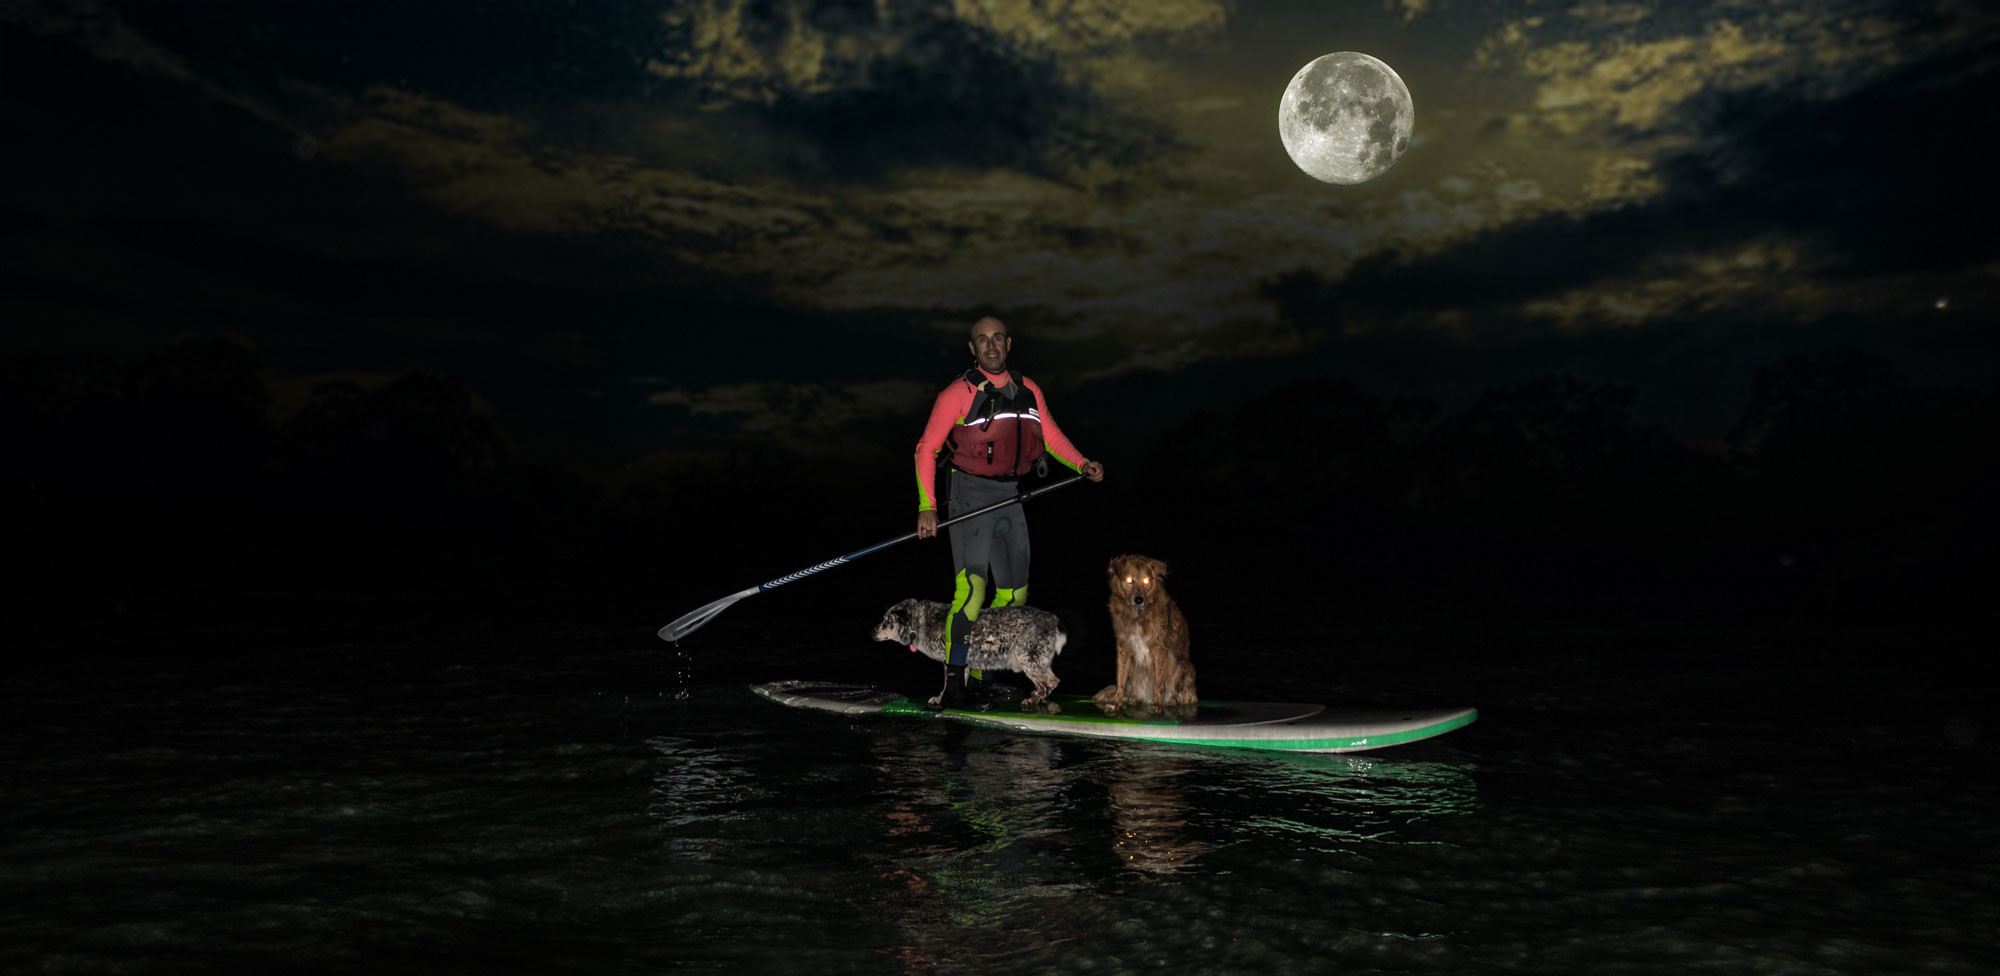 Howl at the moon tour - SUP and kayaking